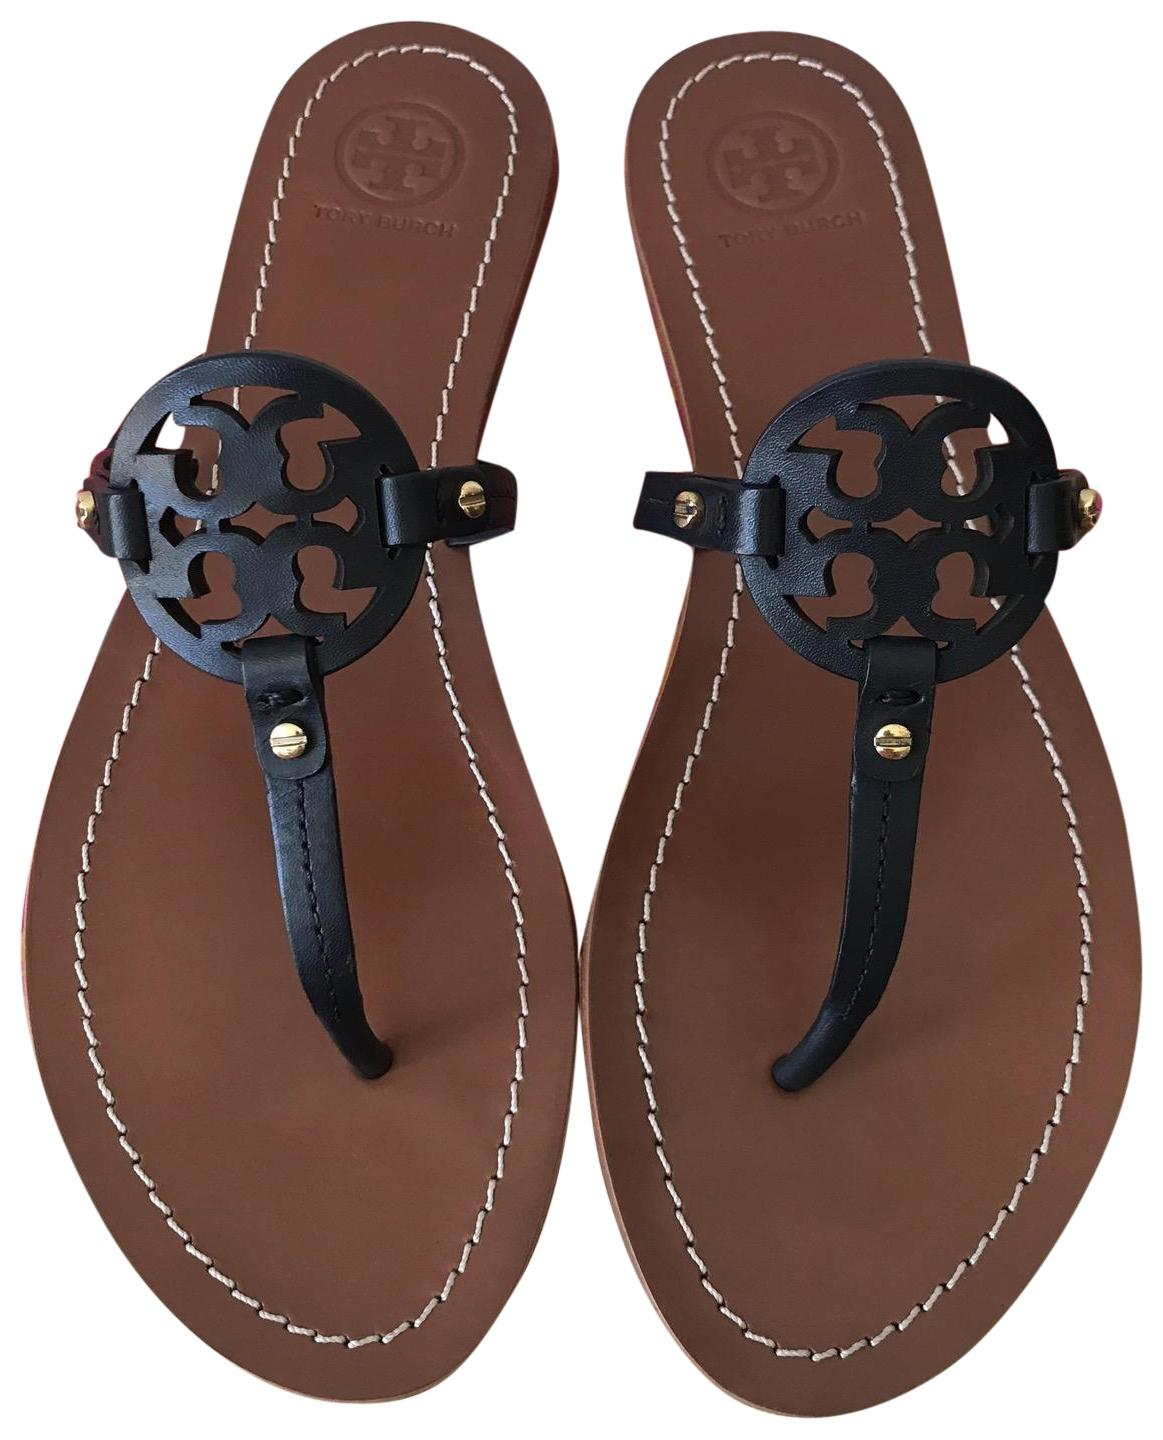 33613e4c3068 Tory Burch Blue 7.5m Mini Miller Flat Sandals Size US US US 7.5 Regular (M